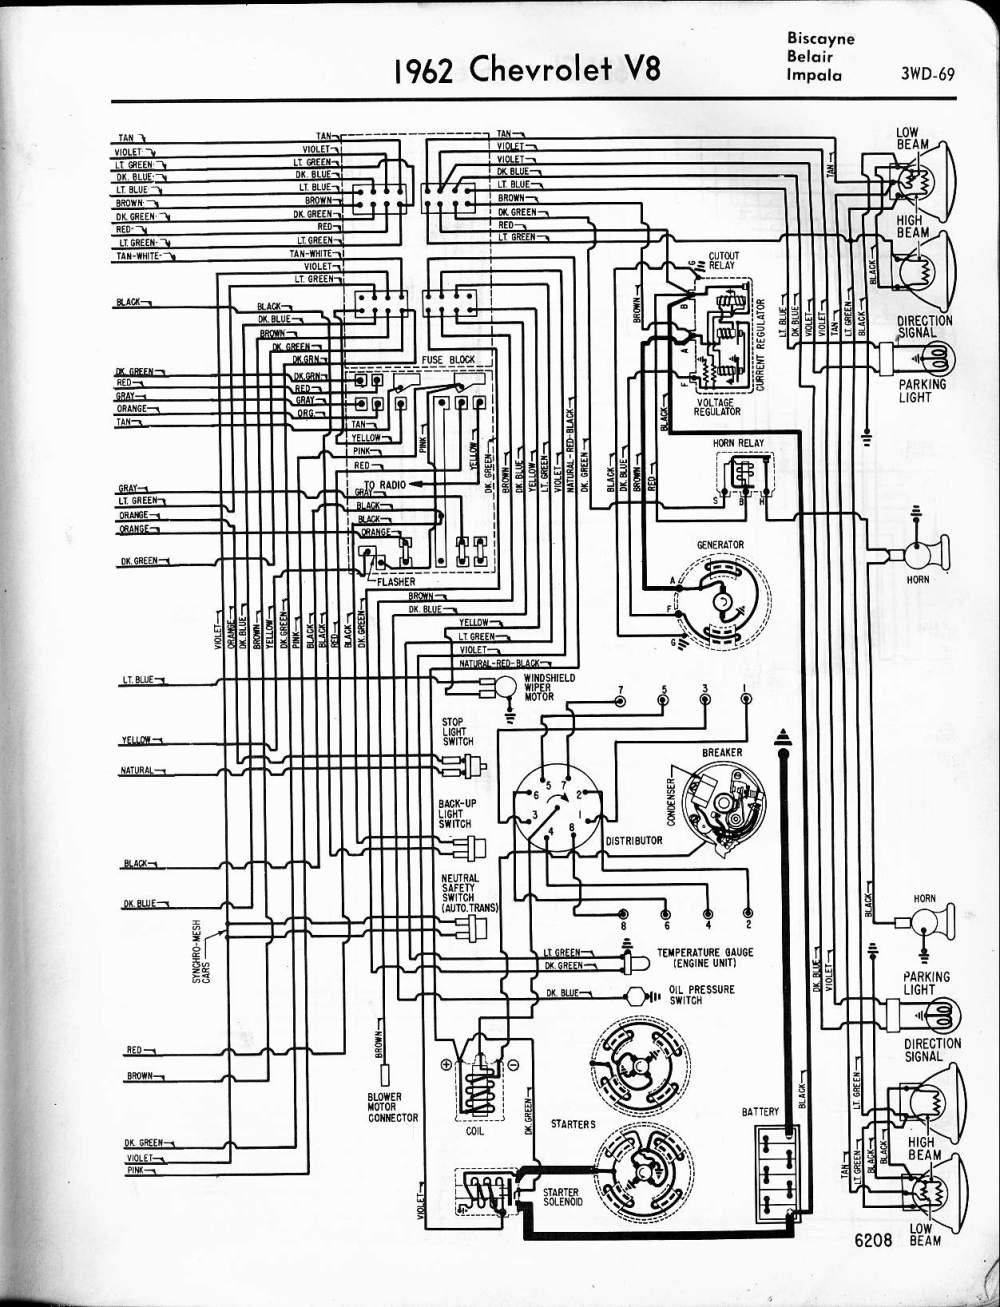 medium resolution of 57 65 chevy wiring diagrams 12 volt starter wiring diagram 1962 v8 biscayne belair